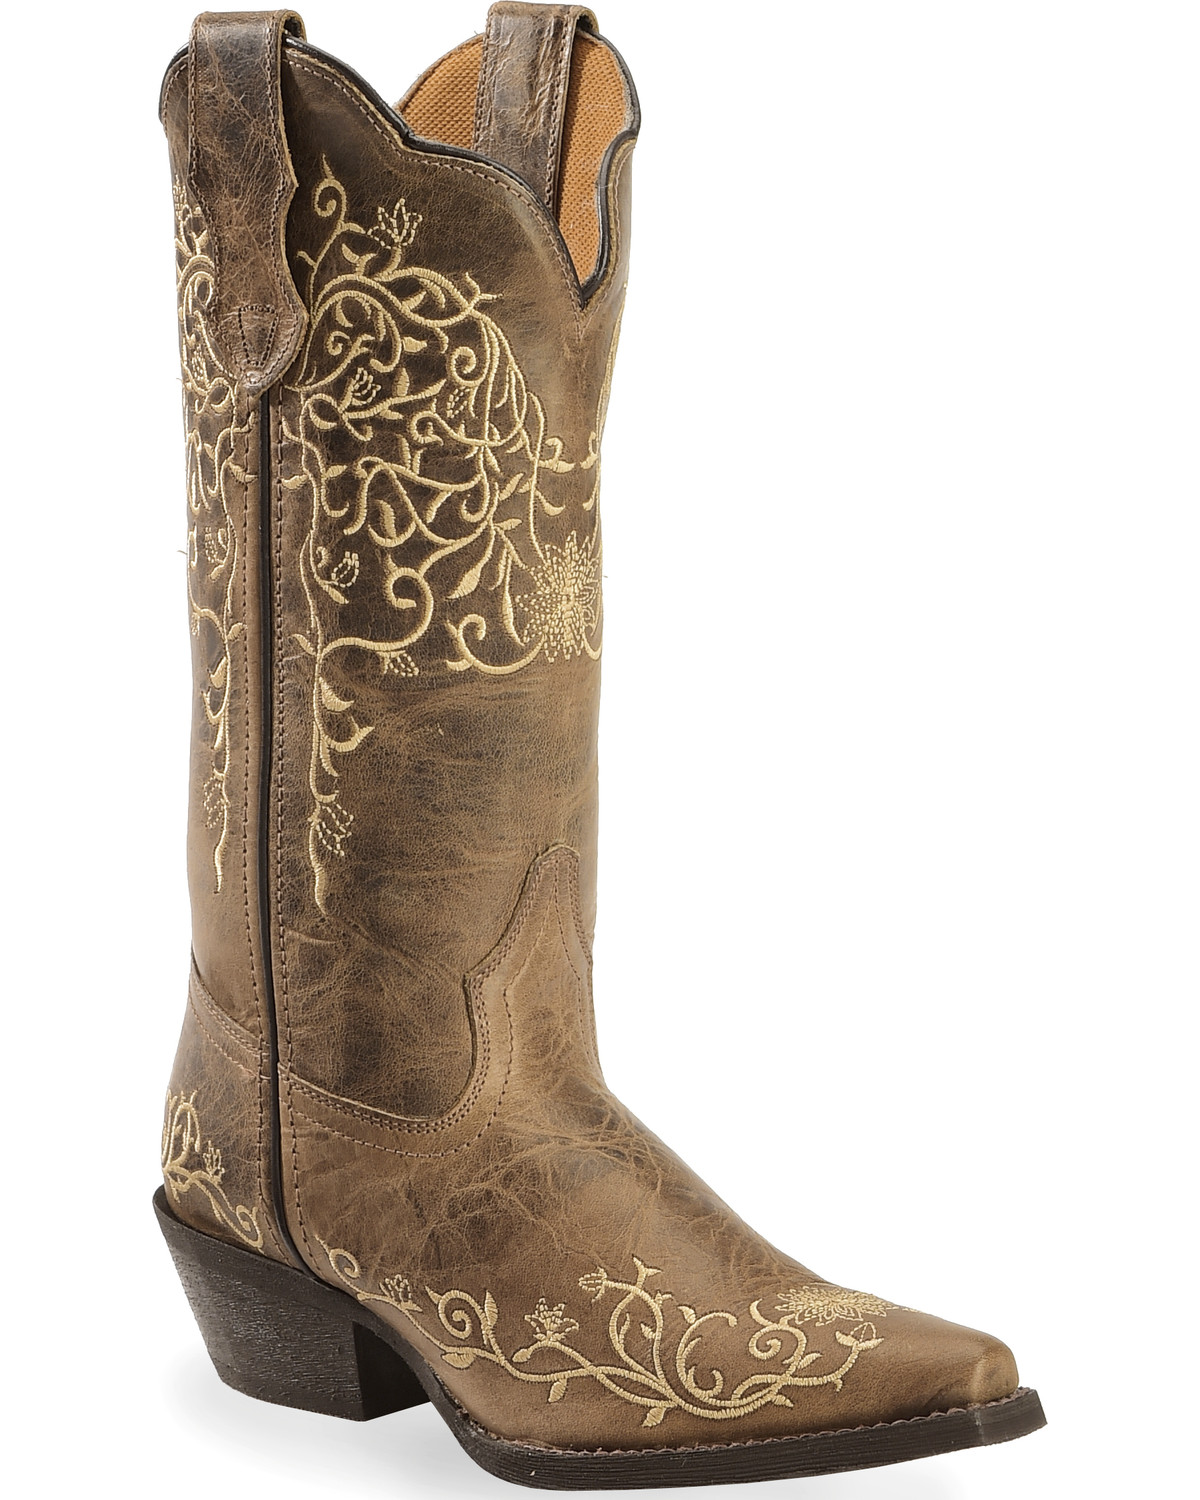 Laredo Women's Jasmine Embroidered Western Boots